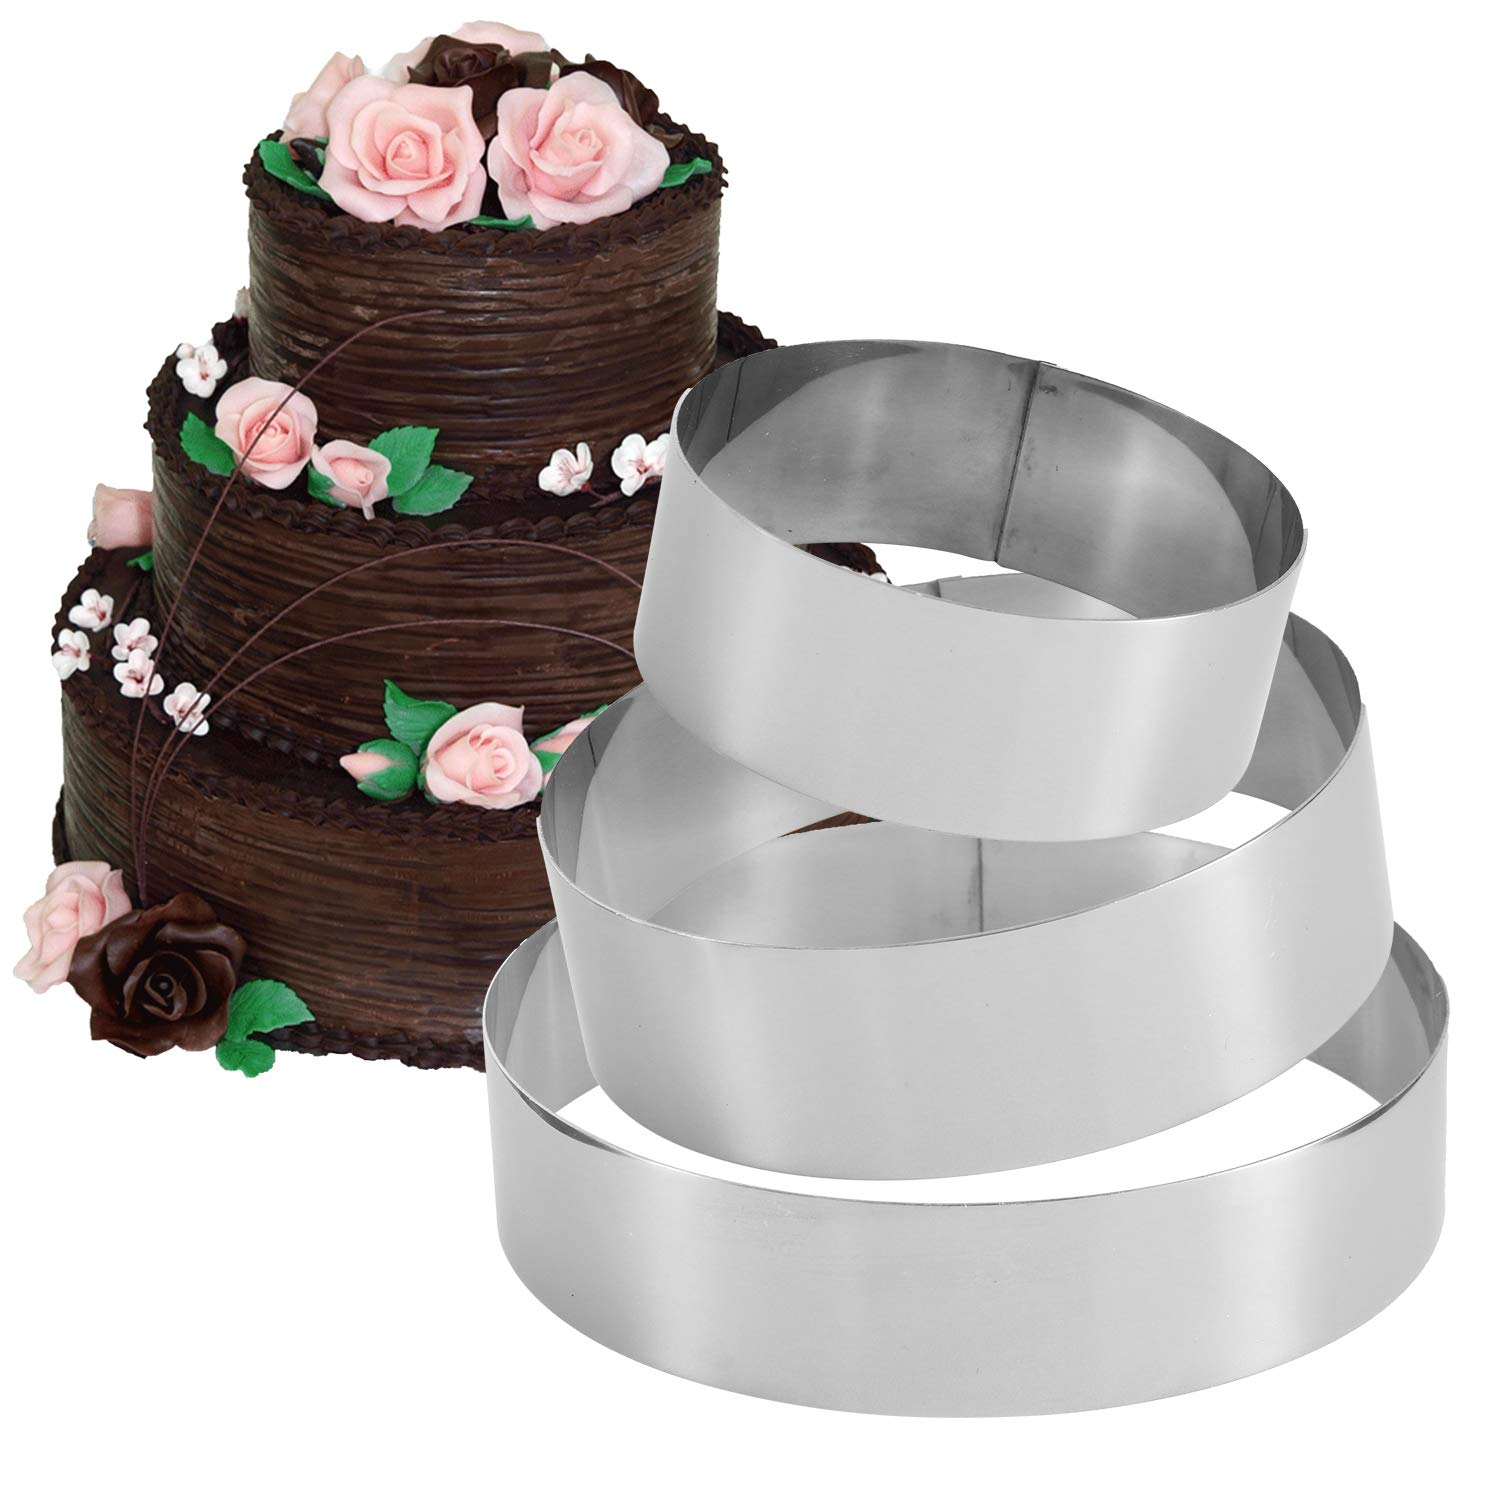 Cat-Shapes,Set of 3 Funwhale 3 Tier Cat Multilayer Anniversary Birthday Cake Baking Pans,Stainless Steel 3 Sizes Rings Cat Molding Mousse Cake Rings